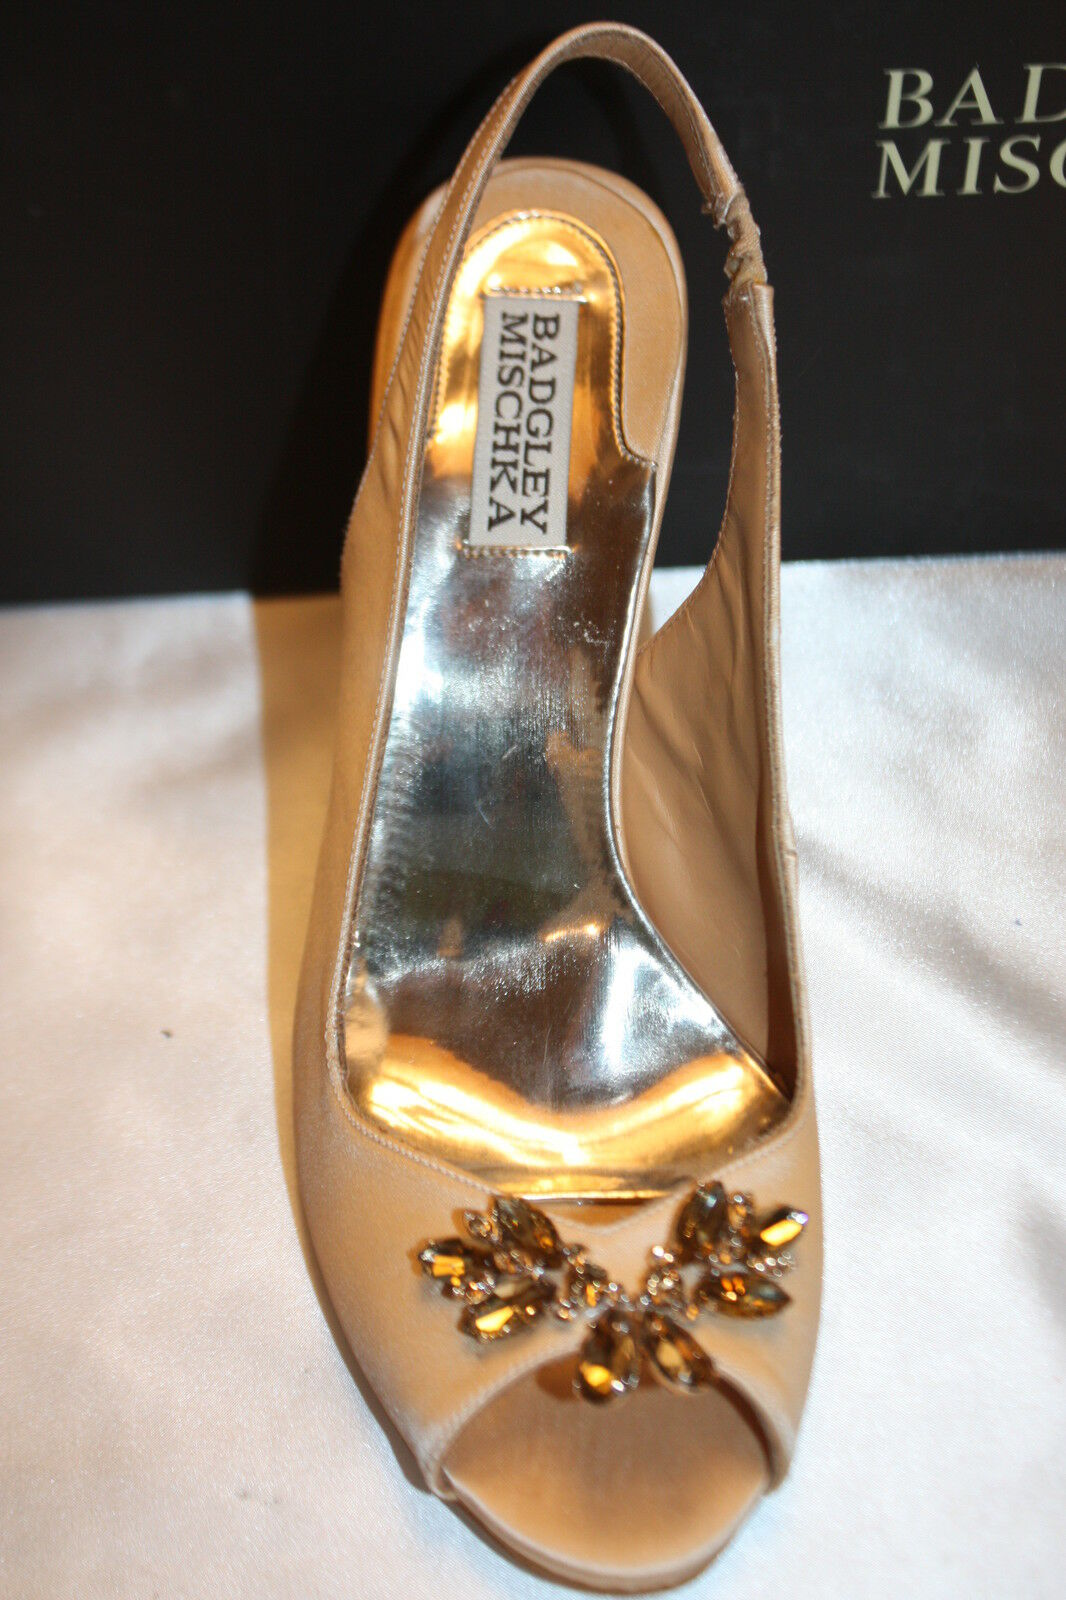 NEW  BADGLEY MISCHKA Natural Satin Satin Satin SALLY Heels Open Toe Bridal Wedding 8  200 aceb98